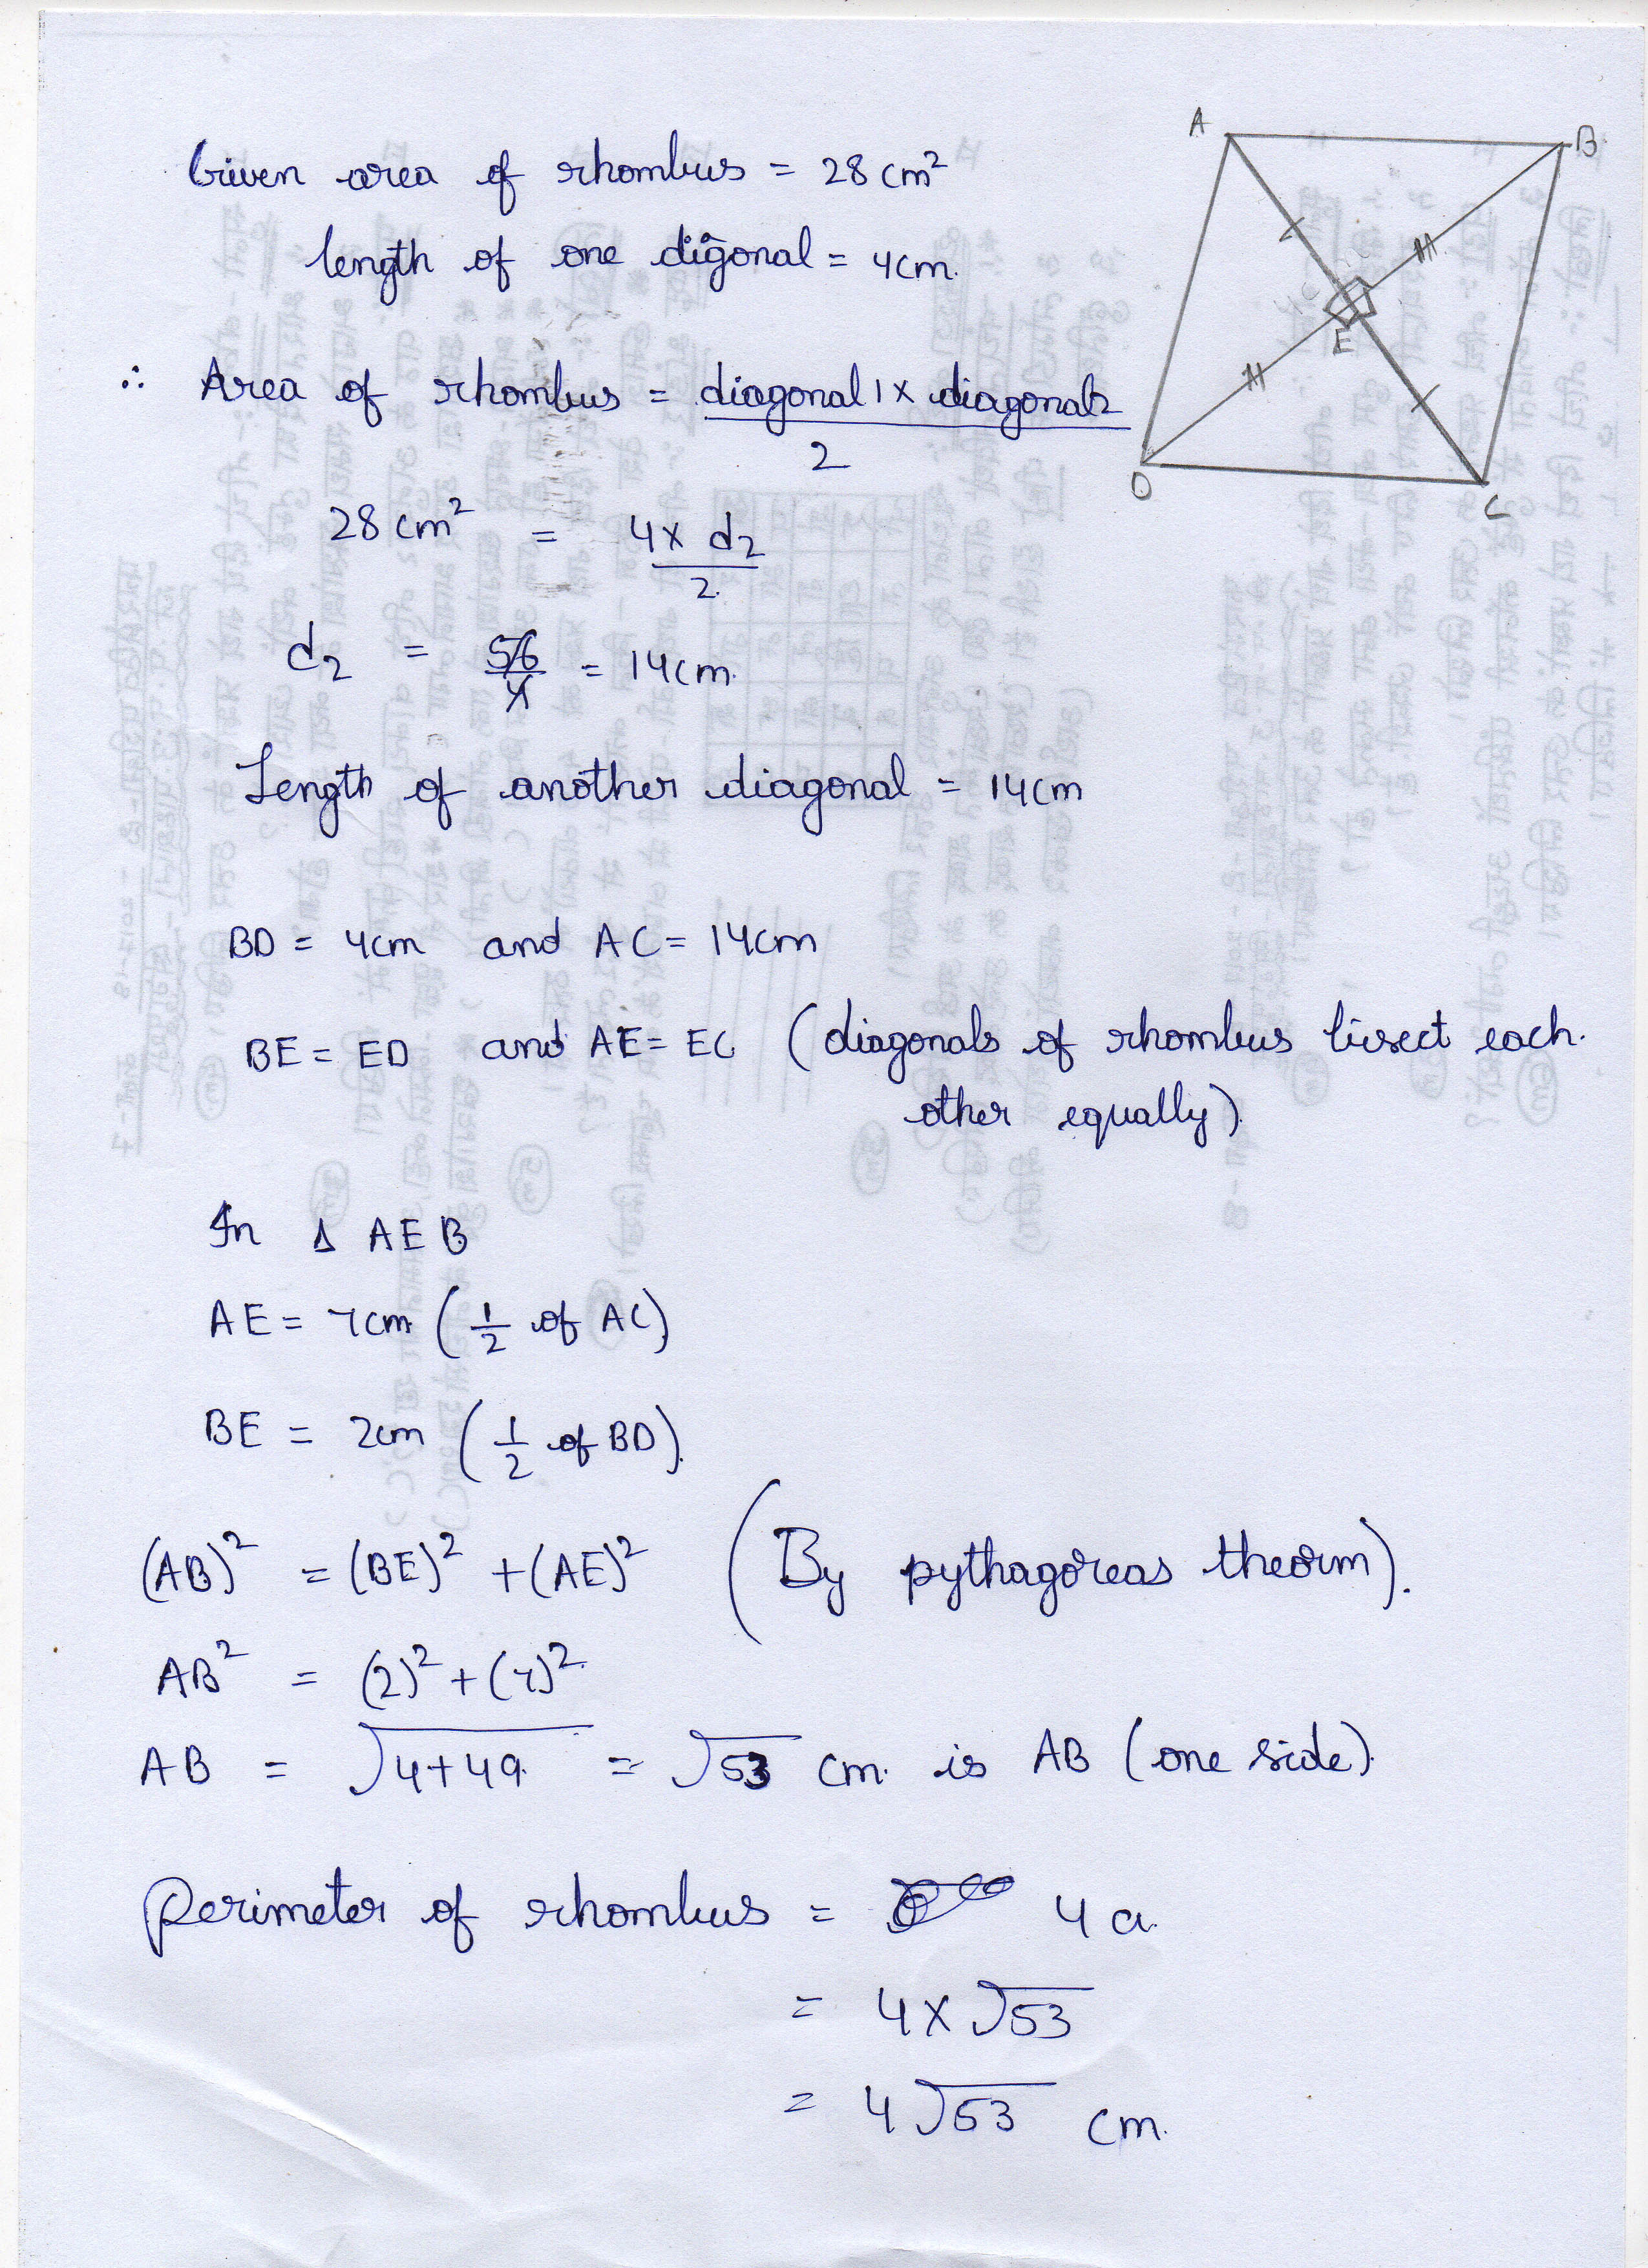 The Area Of A Rhombus Is 28 Cm And One Of Its Diagonal Is